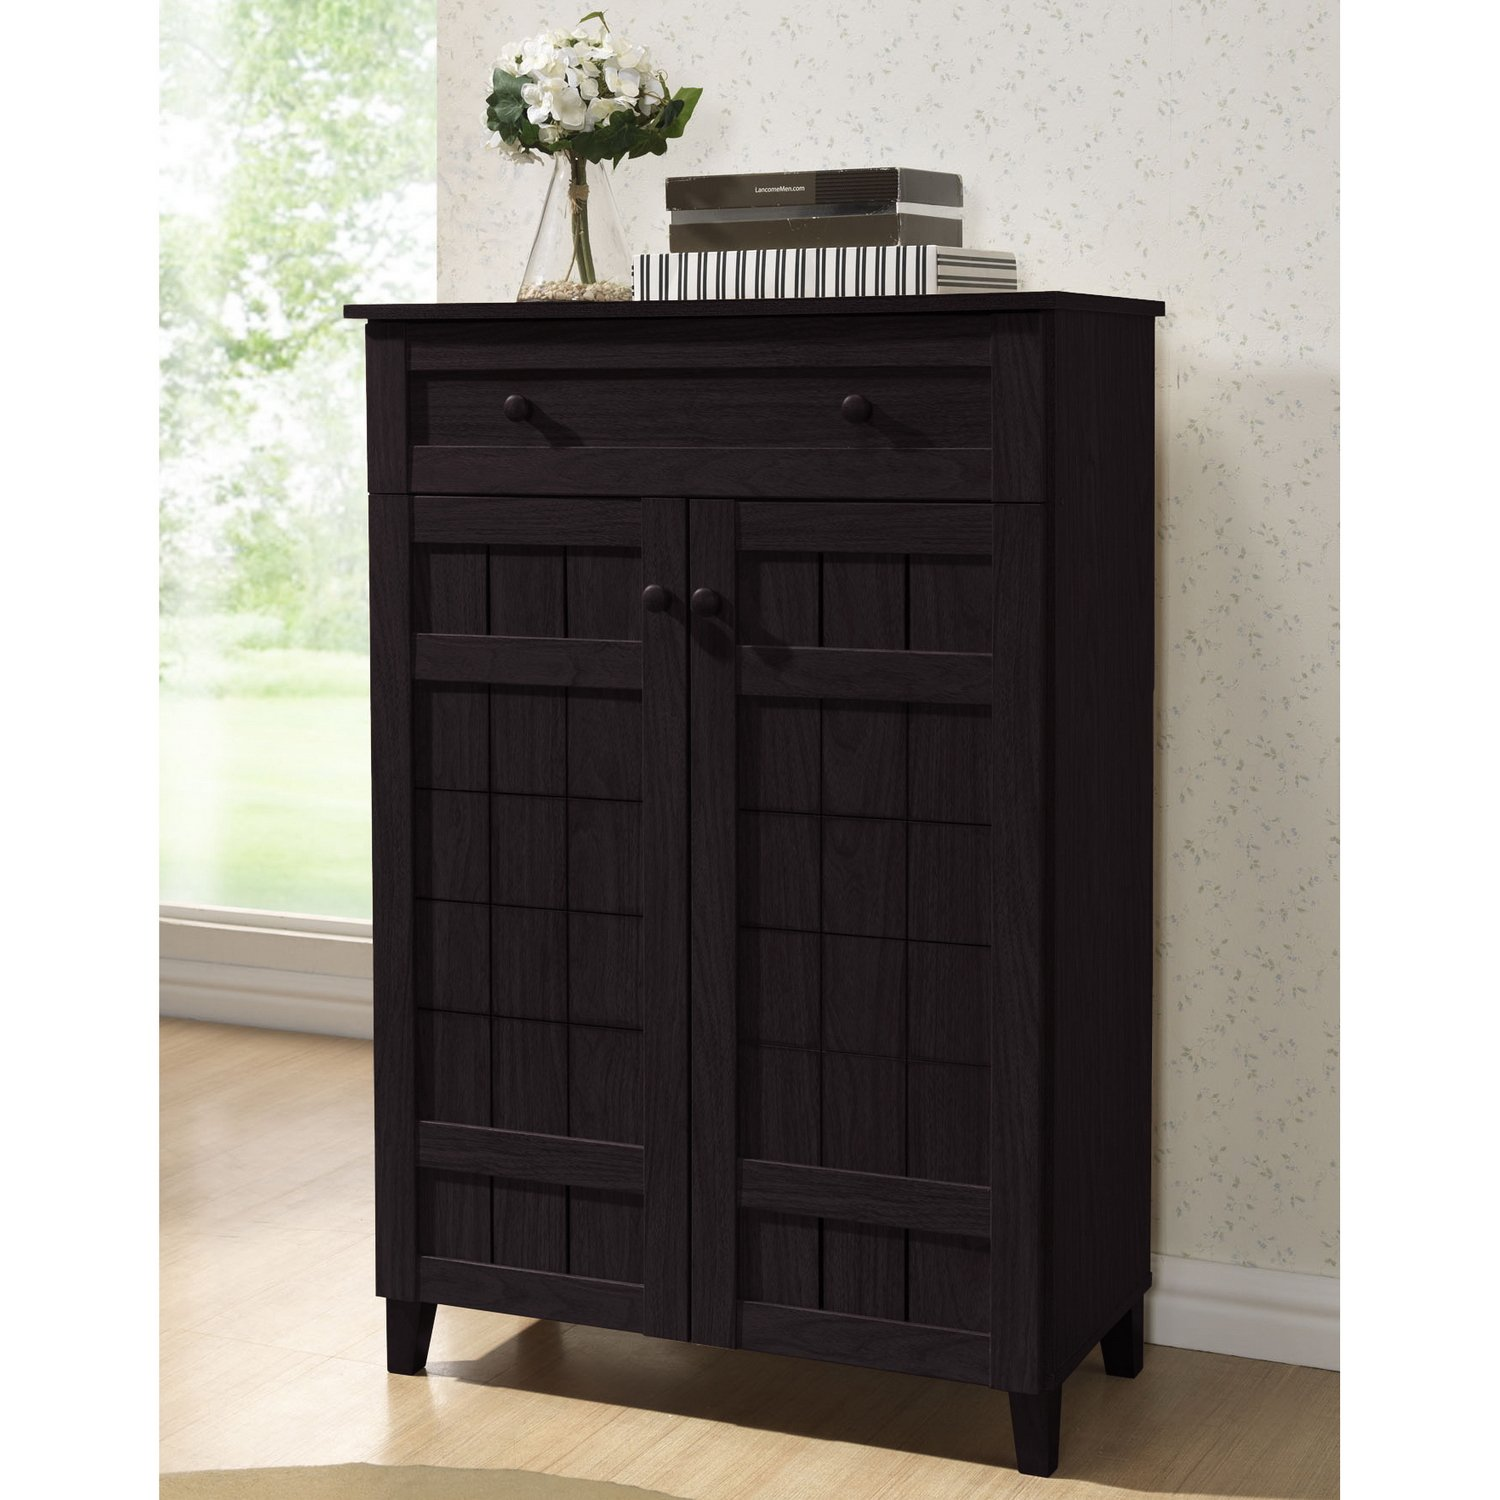 Great Amazon.com: Baxton Studio Glidden Wood Modern Shoe Cabinet, Tall, Dark  Brown: Kitchen U0026 Dining